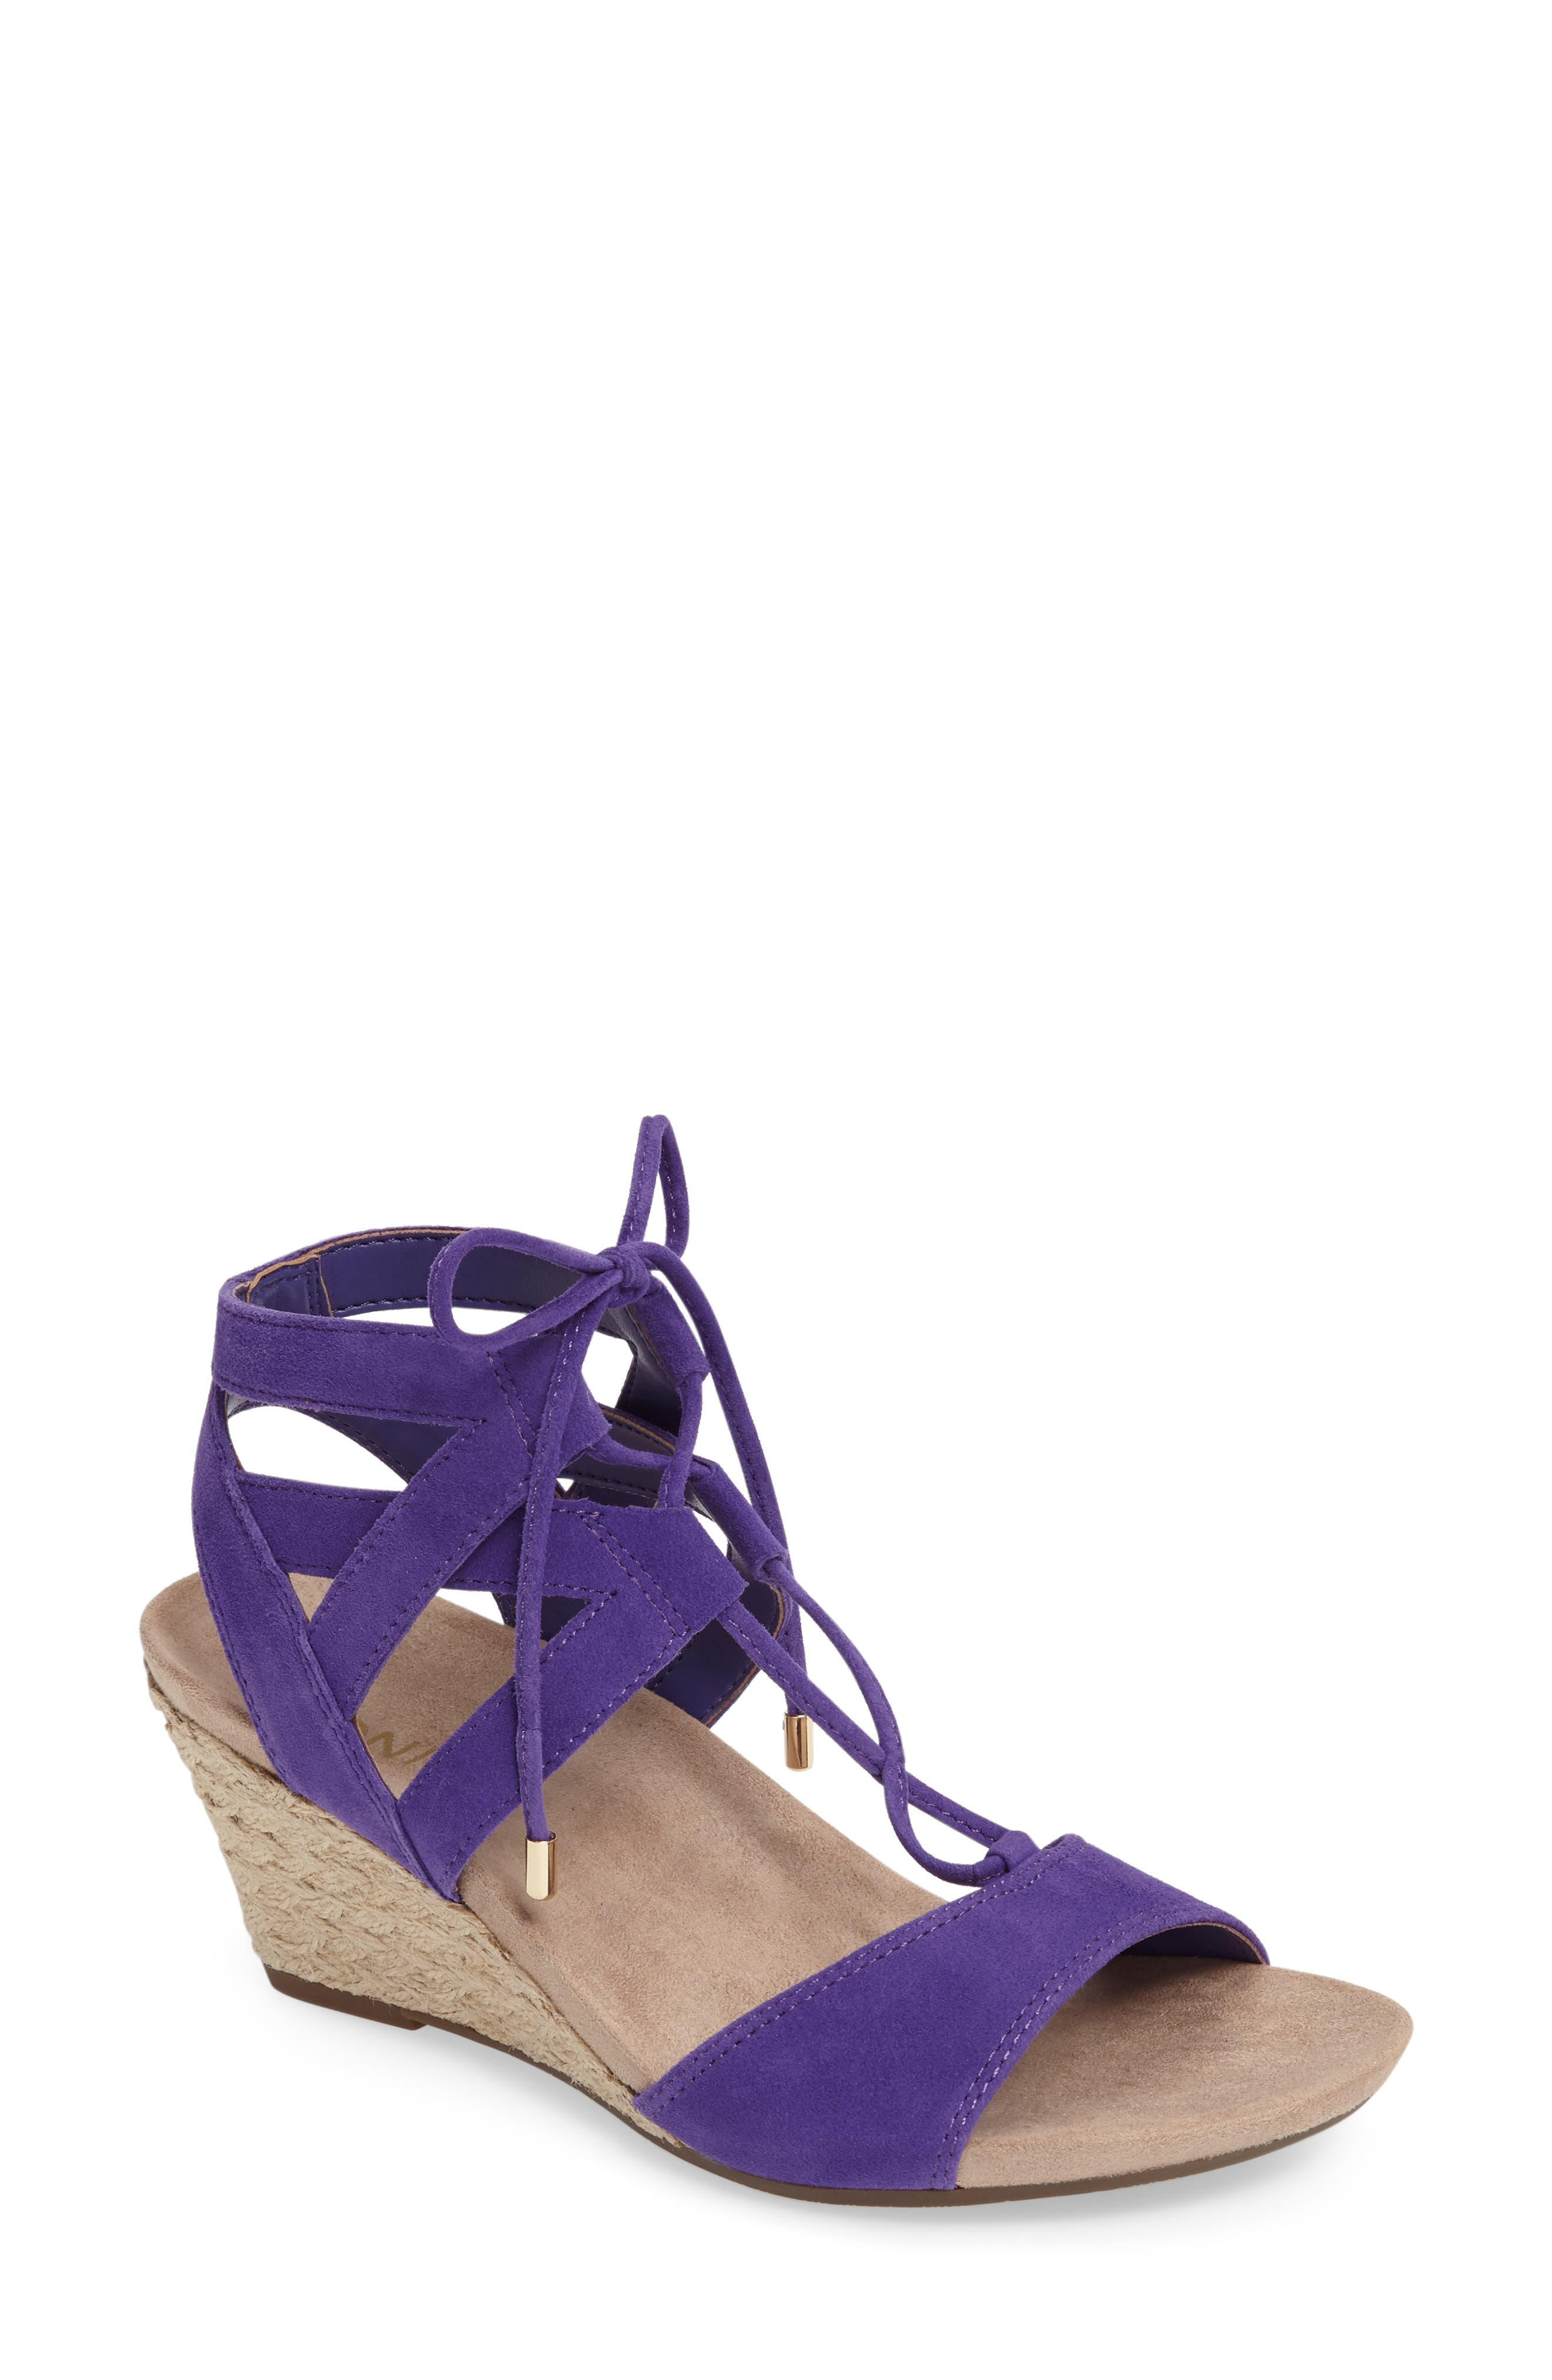 Vionic Tansy Wedge Espadrille Sandal (Women)